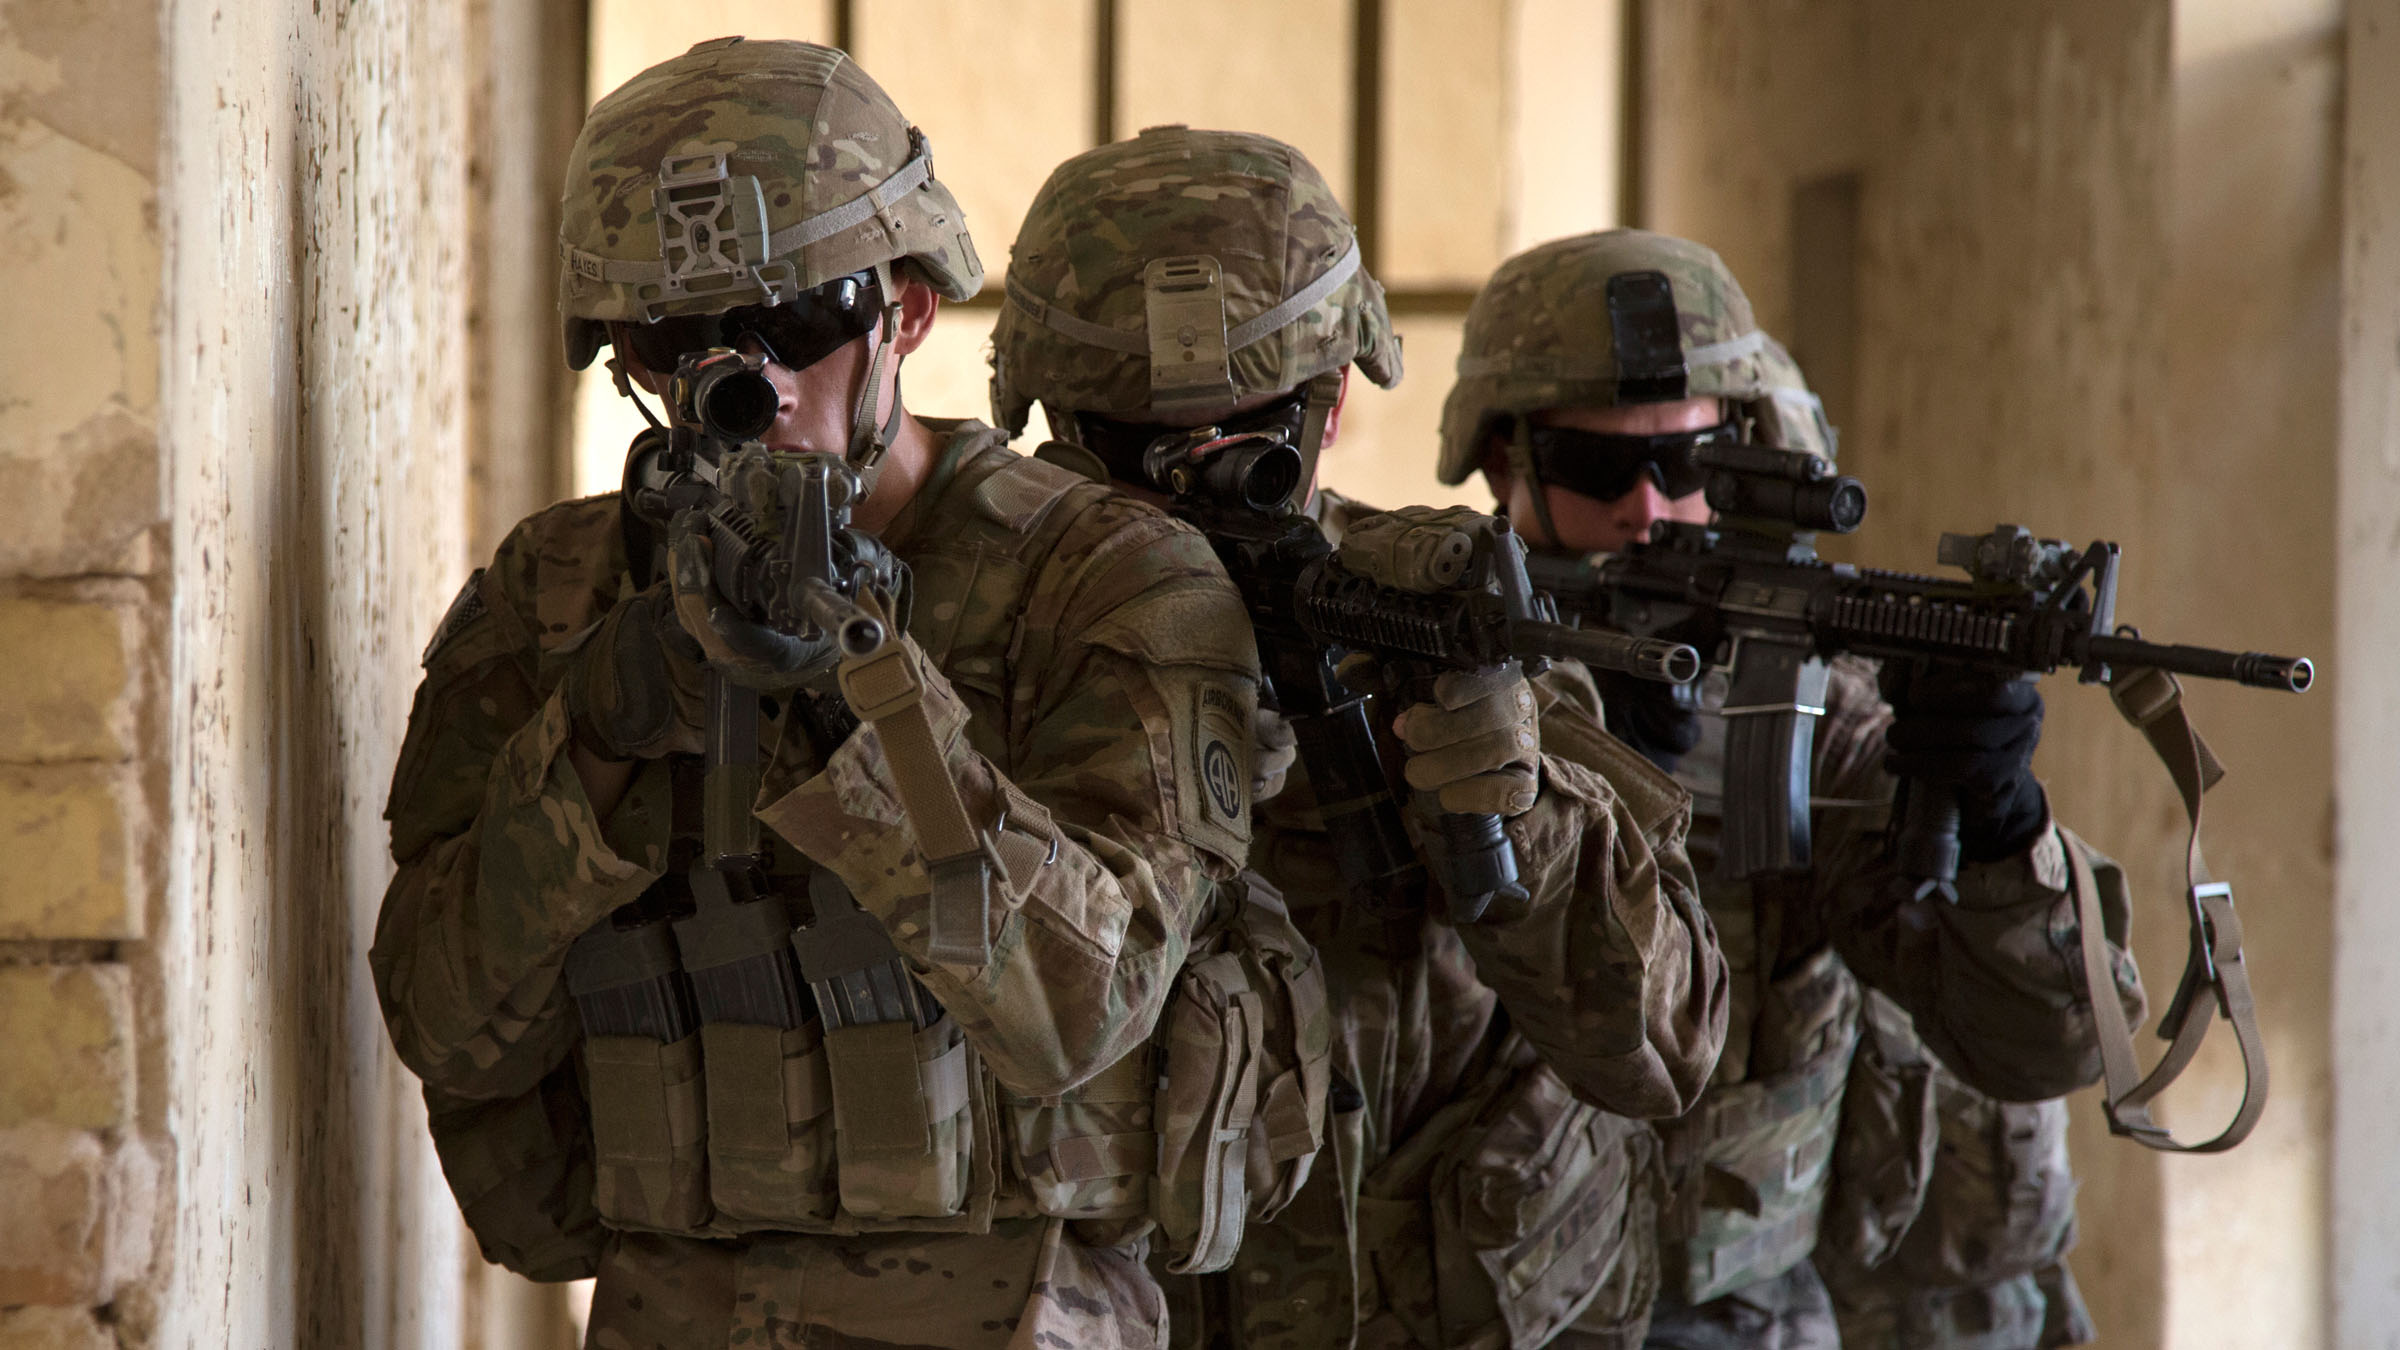 a look at private military firms and their role in the us While contractors have worked with the government since the country's founding their role has grown as the united states relies private military.